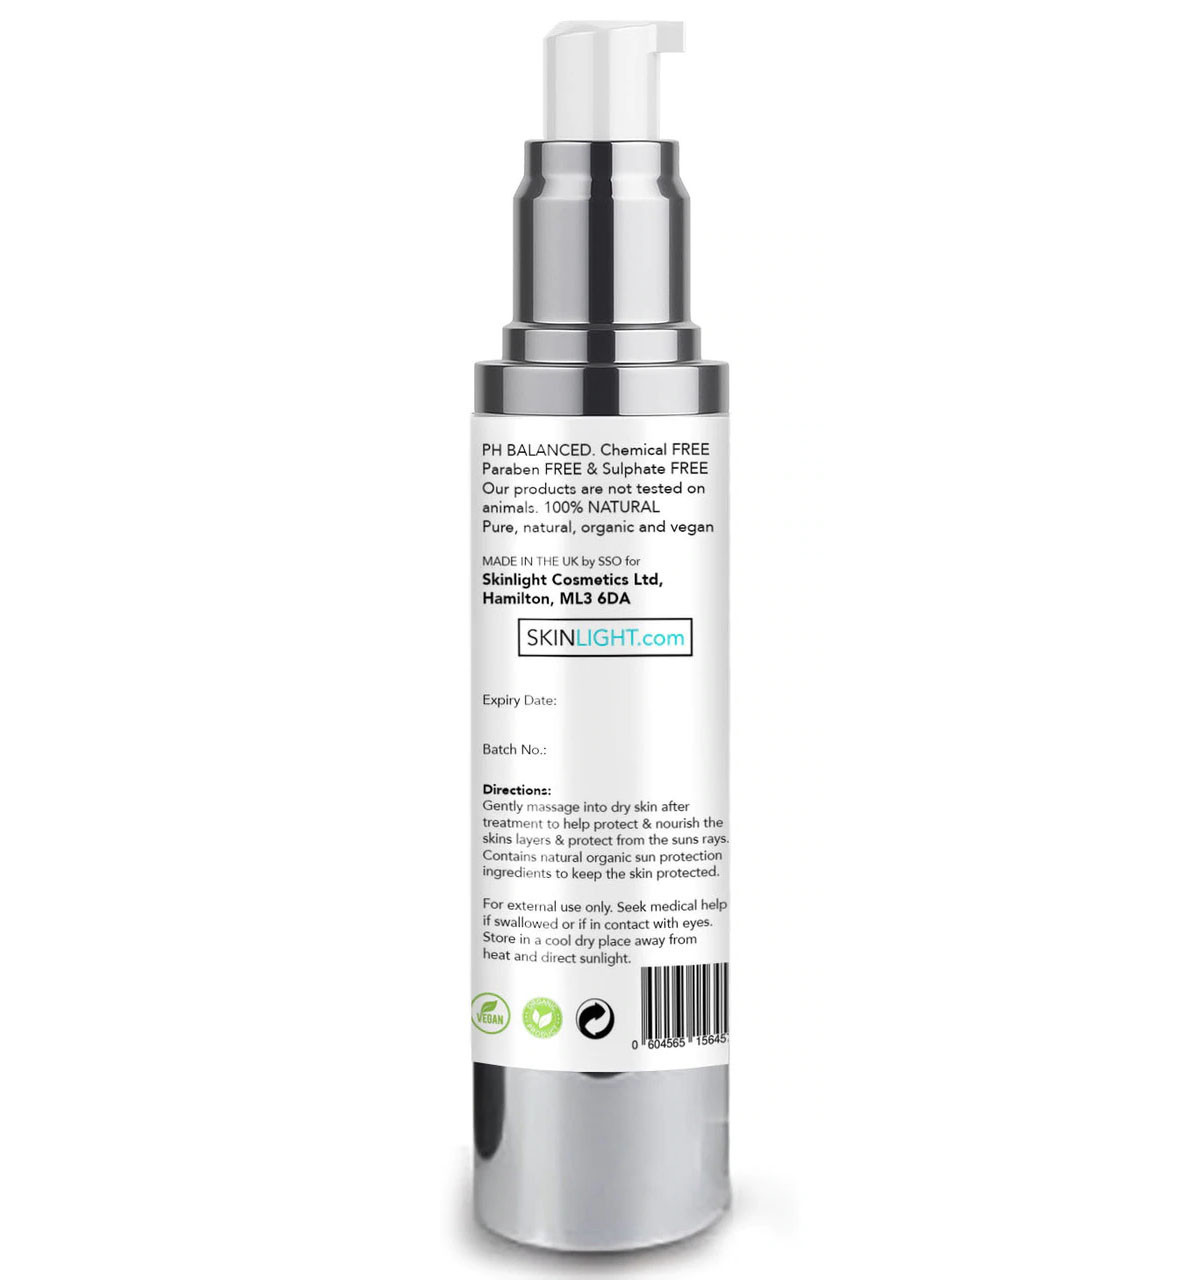 6 X  Dark Spot Corrector For Hyperpigmentation - For Dark Marks, Scars  and Uneven Skin Tone